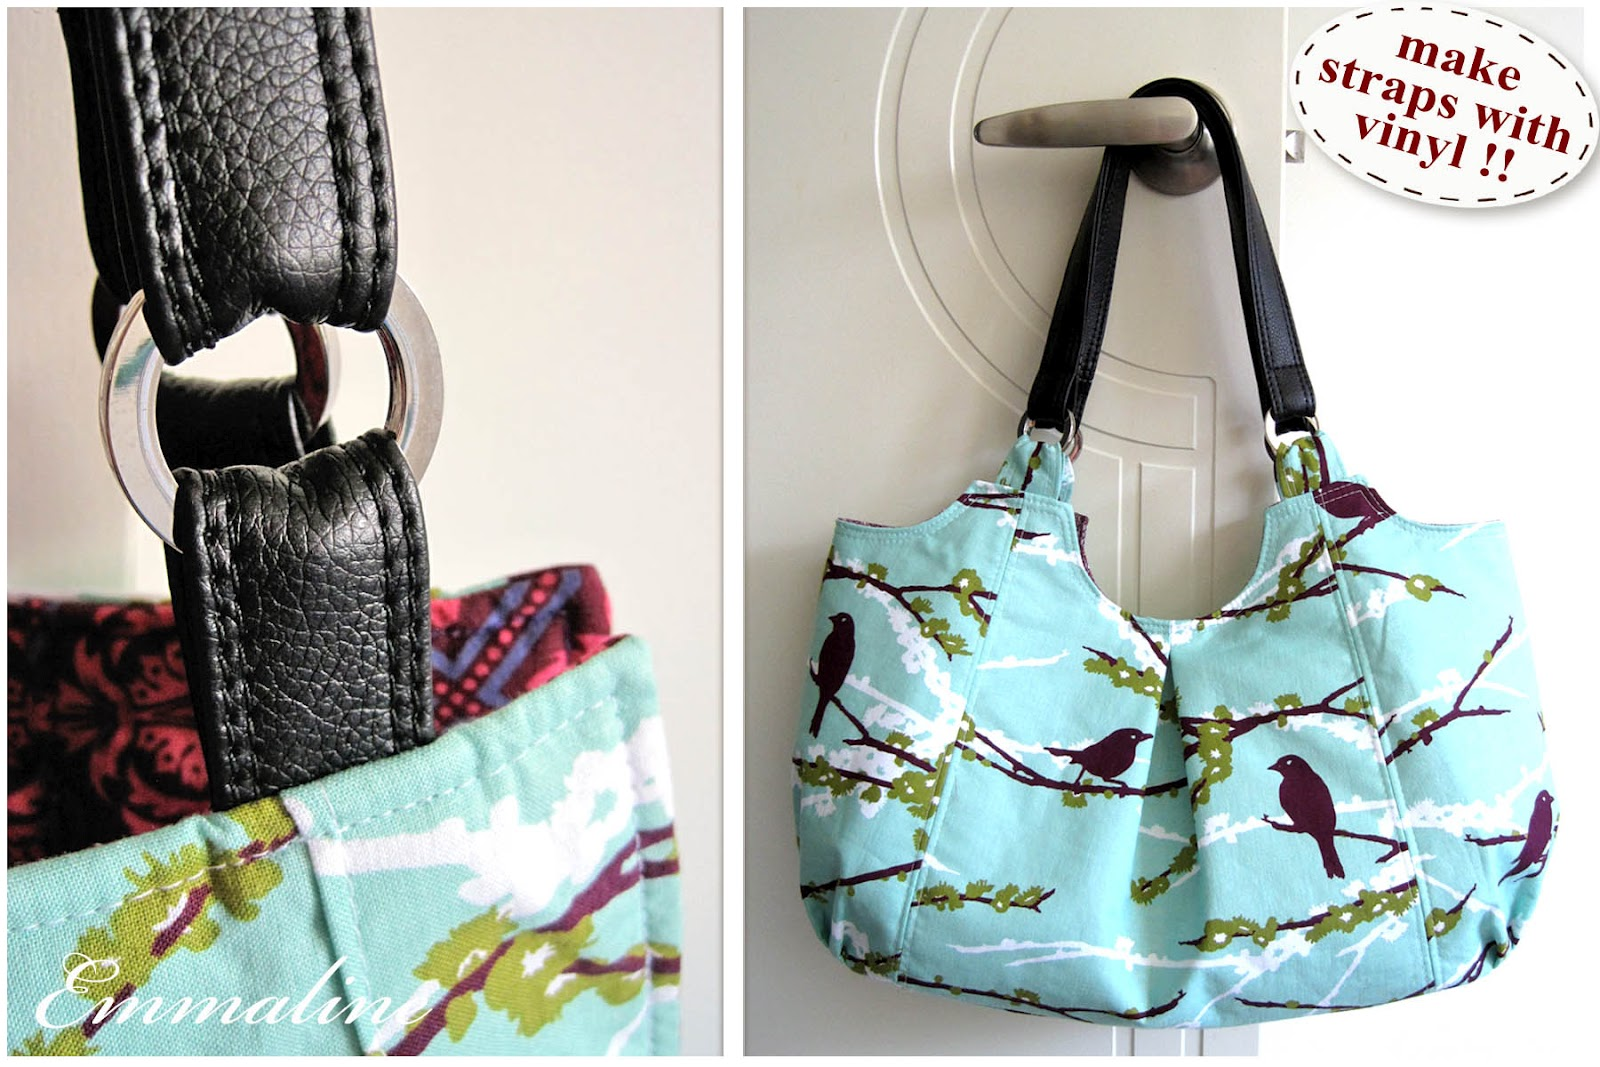 Make Your Own Vinyl Leather Look Handbag Straps A Tutorial